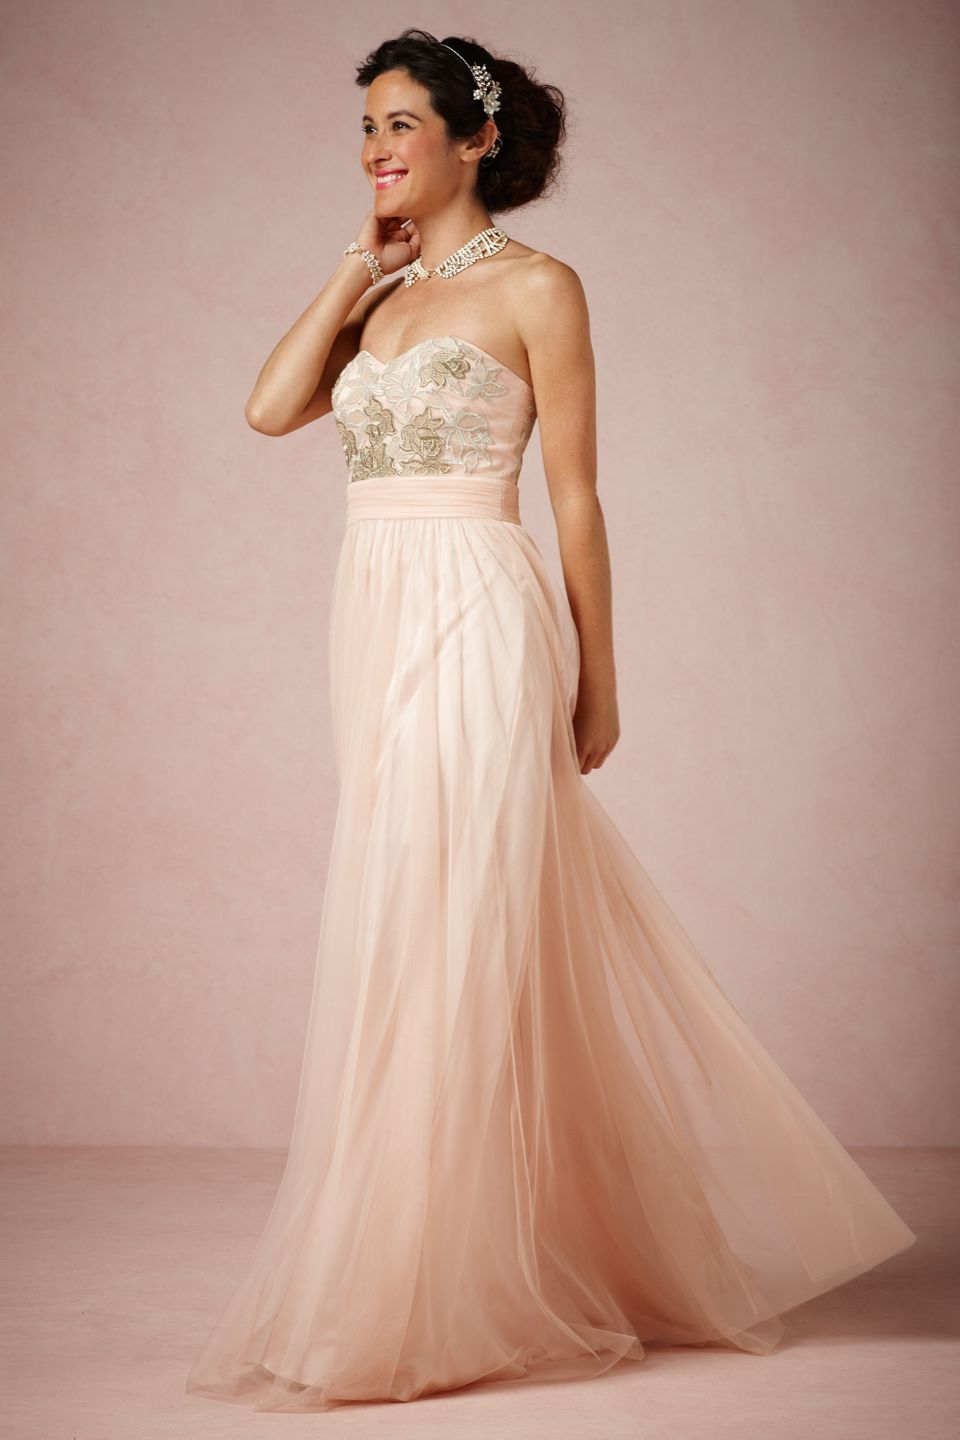 0ef566e645a0 BHLDN's Spring 2013 Collection Include Flower Girl, Mother Of The ...